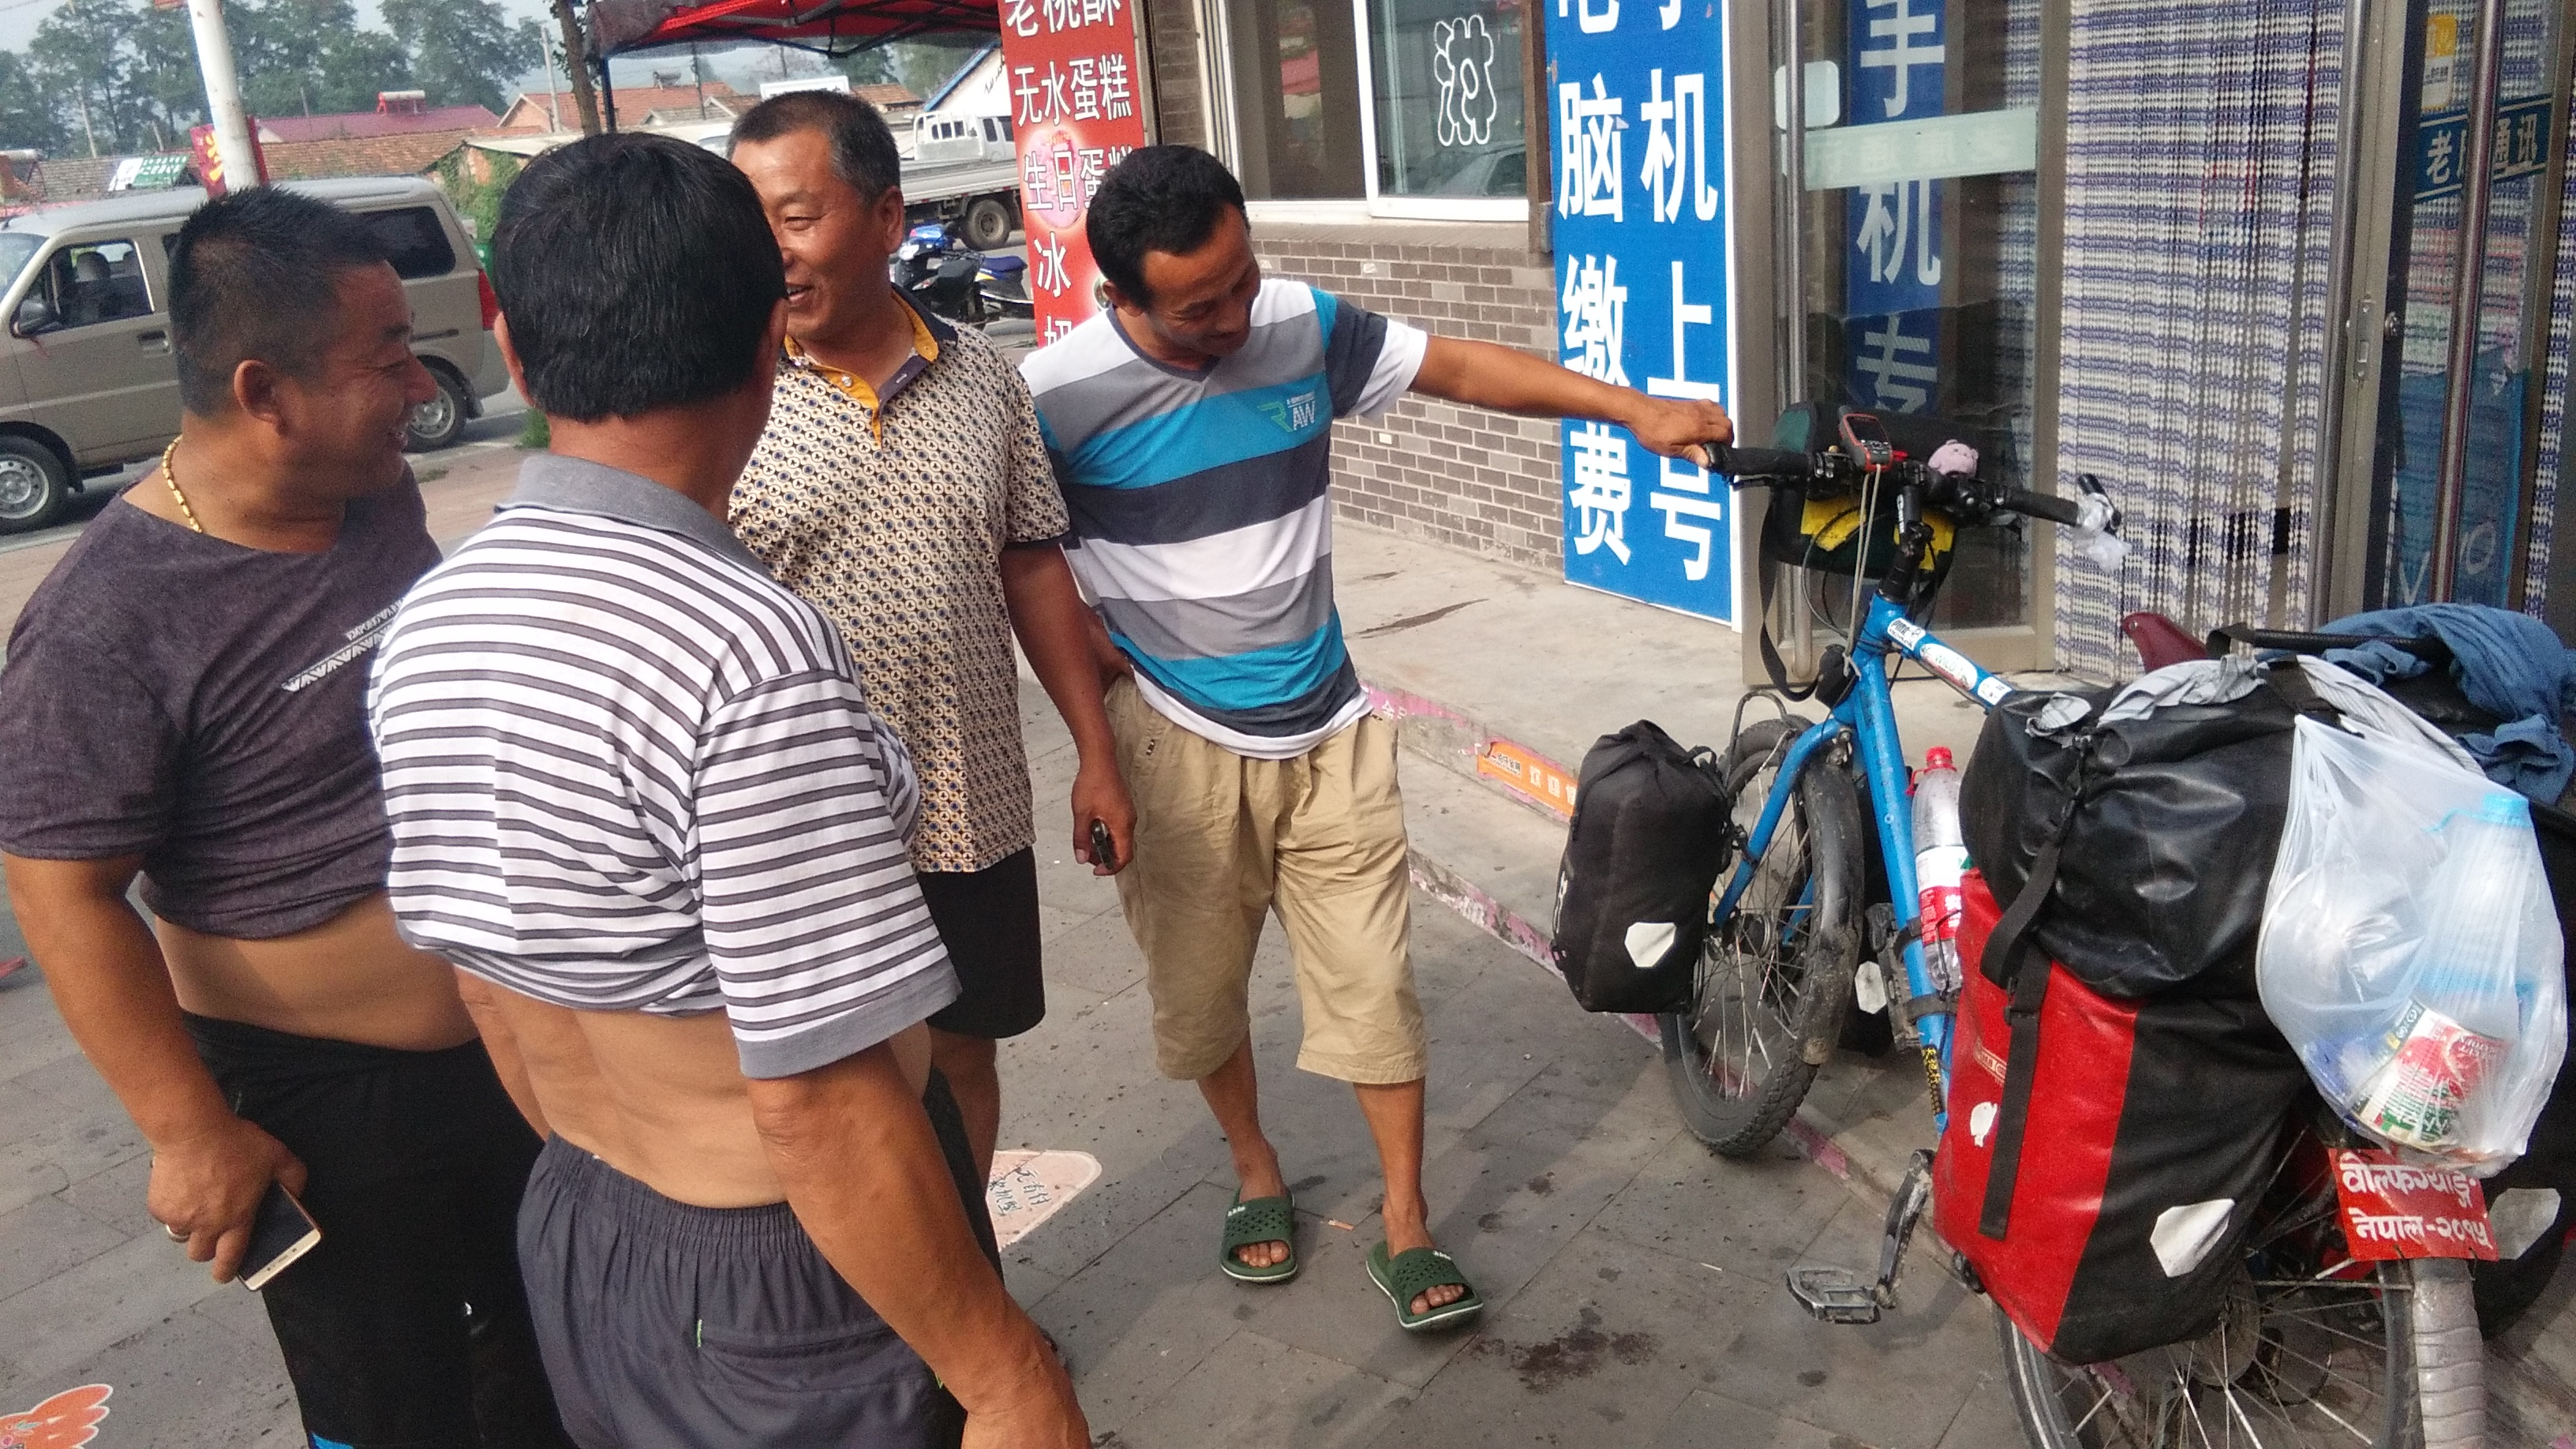 Some tech talk about the bicycle